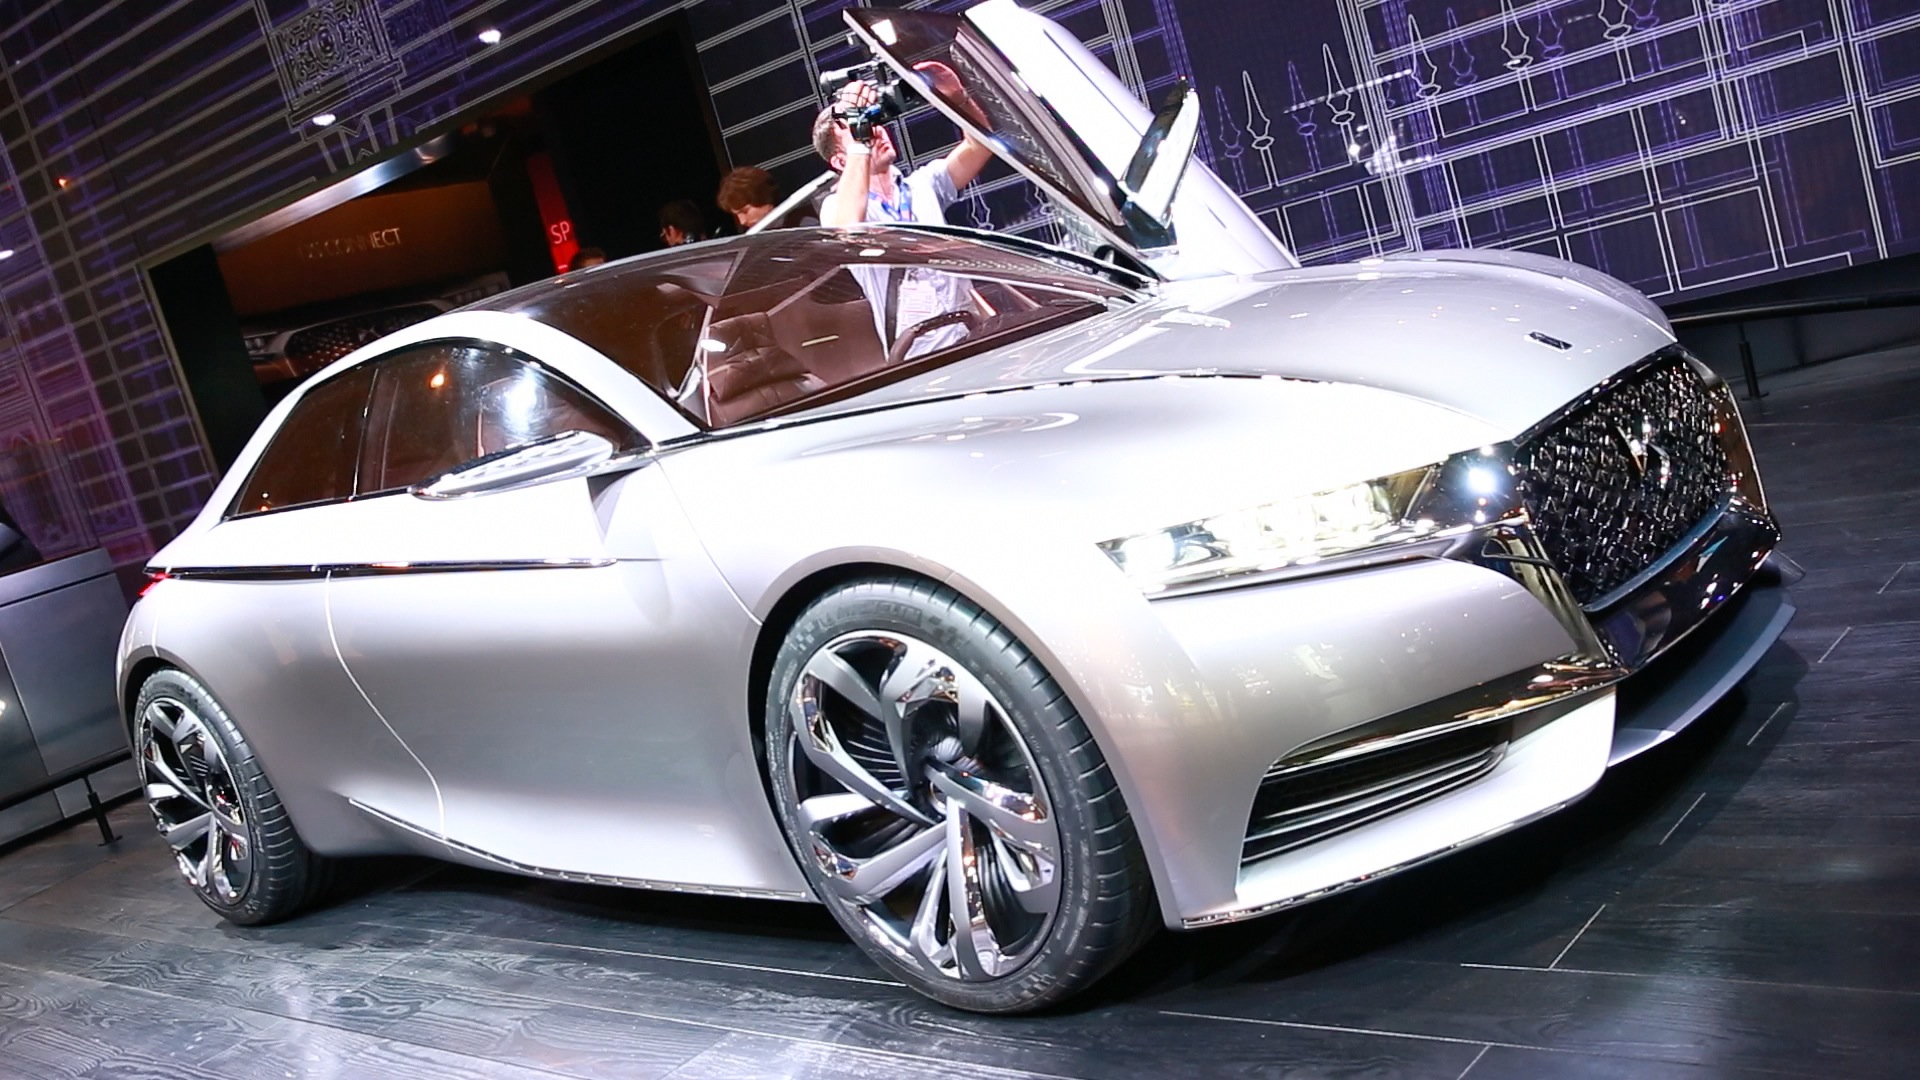 Video: A tour of the best concept cars at the 2014 Paris International Auto Show